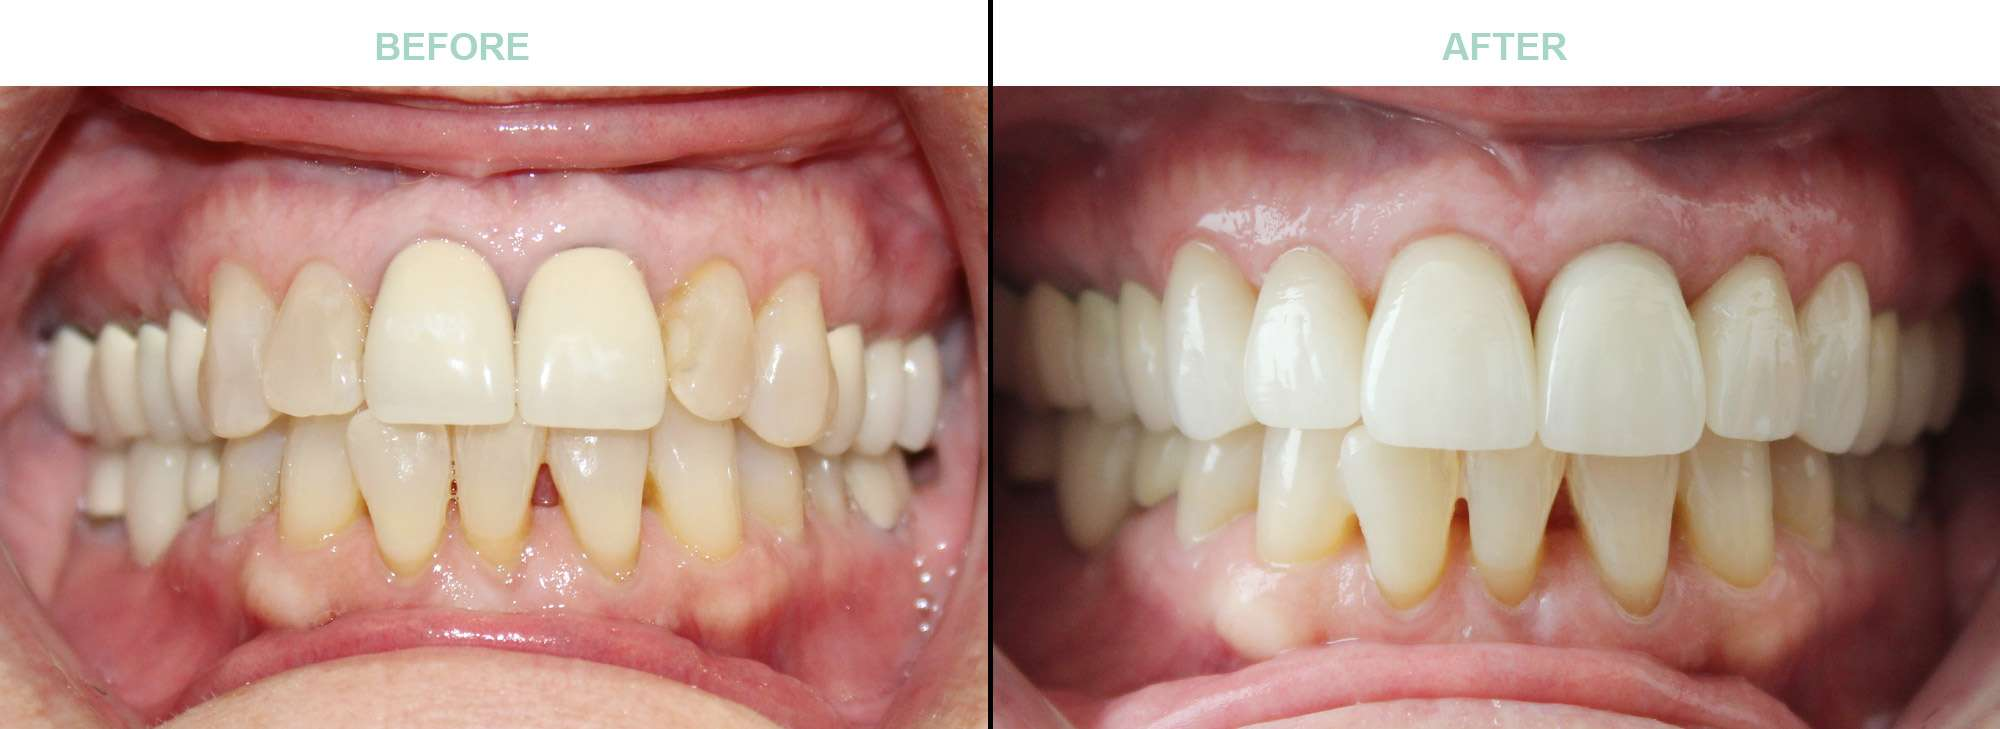 Before and After Smile Gallery - Veneers and Crowns - Surprise AZ Dentistry